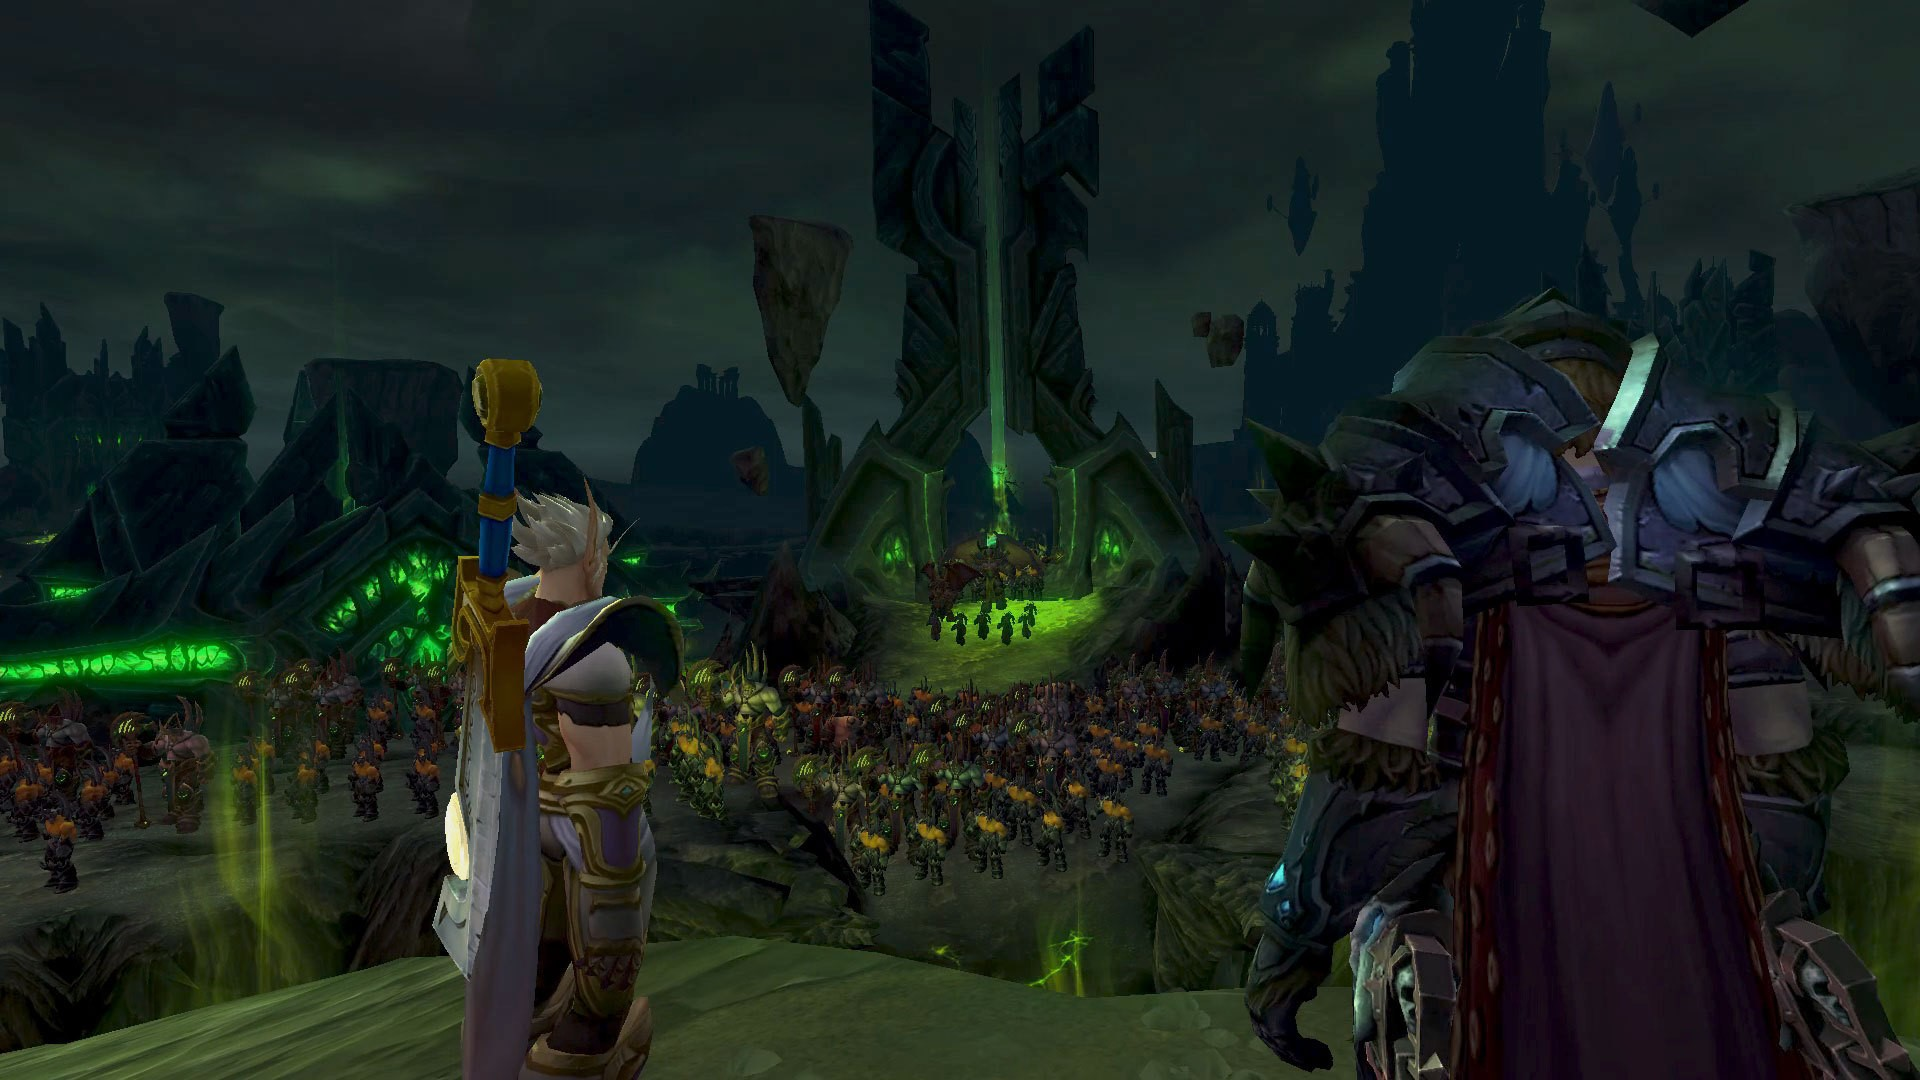 World of Warcraft Wallpapers 3